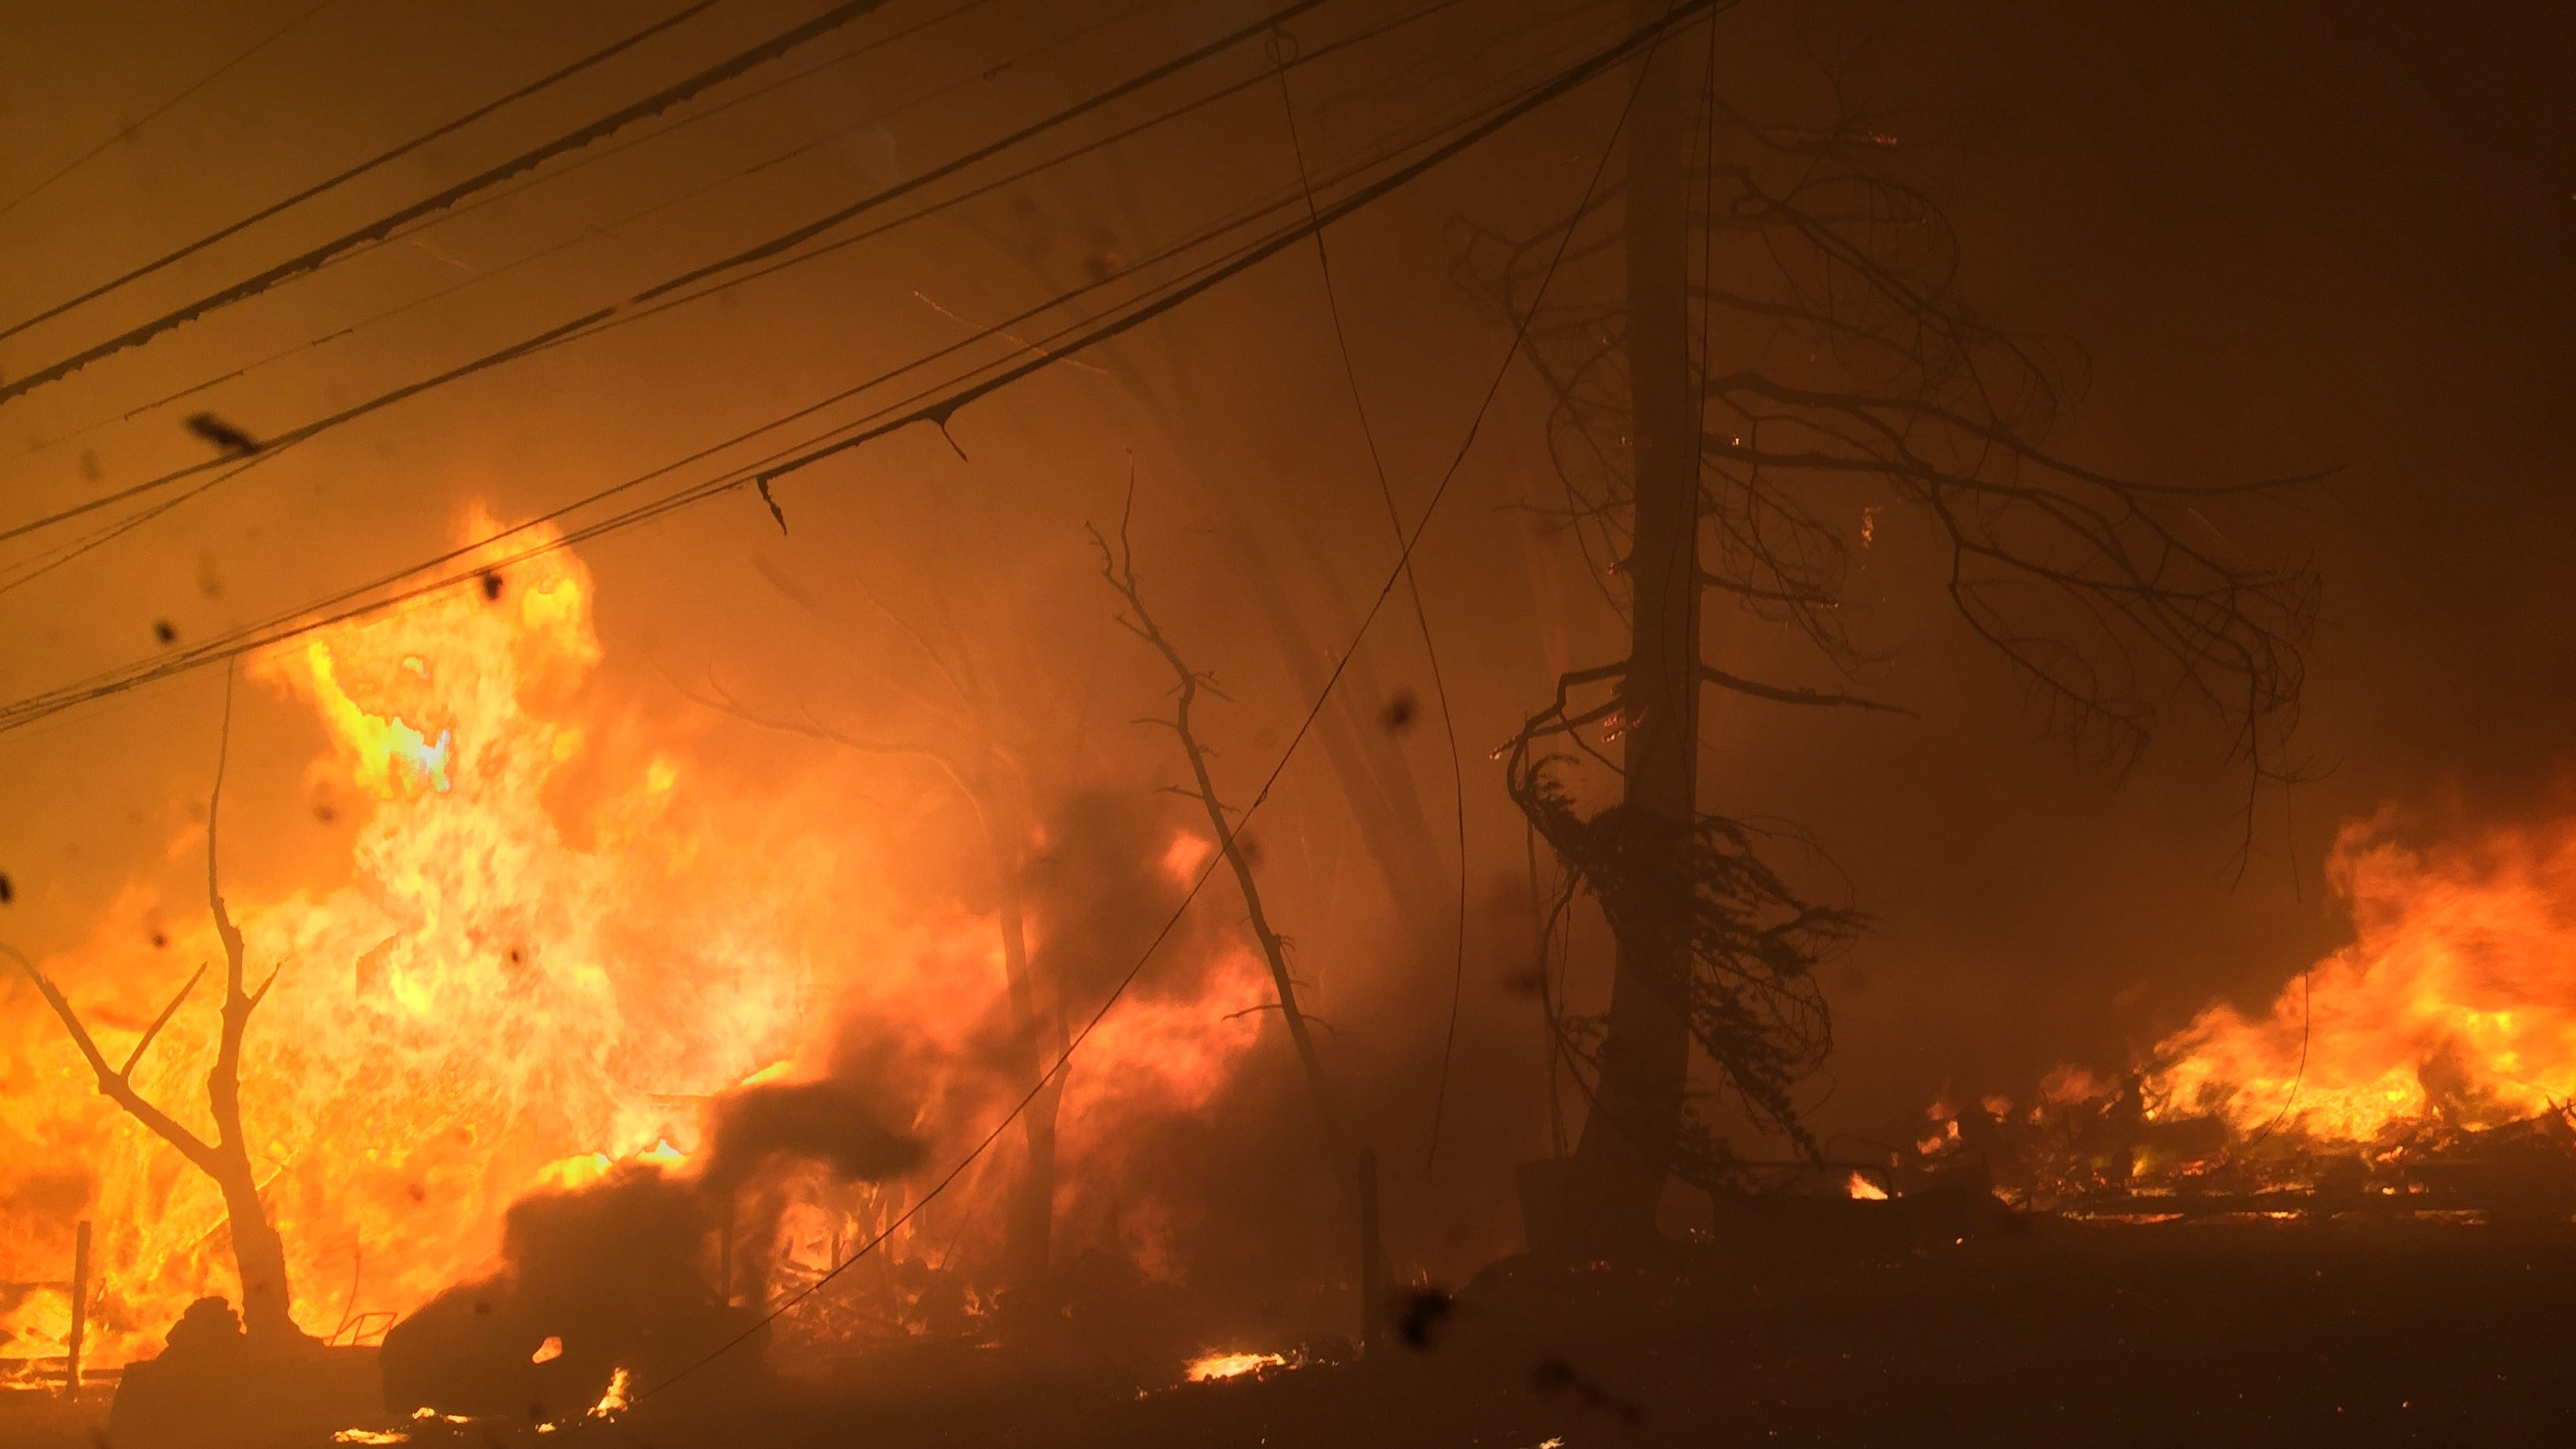 Unprepared to flee: Fleeing from fires is common; evacuation planning isn't